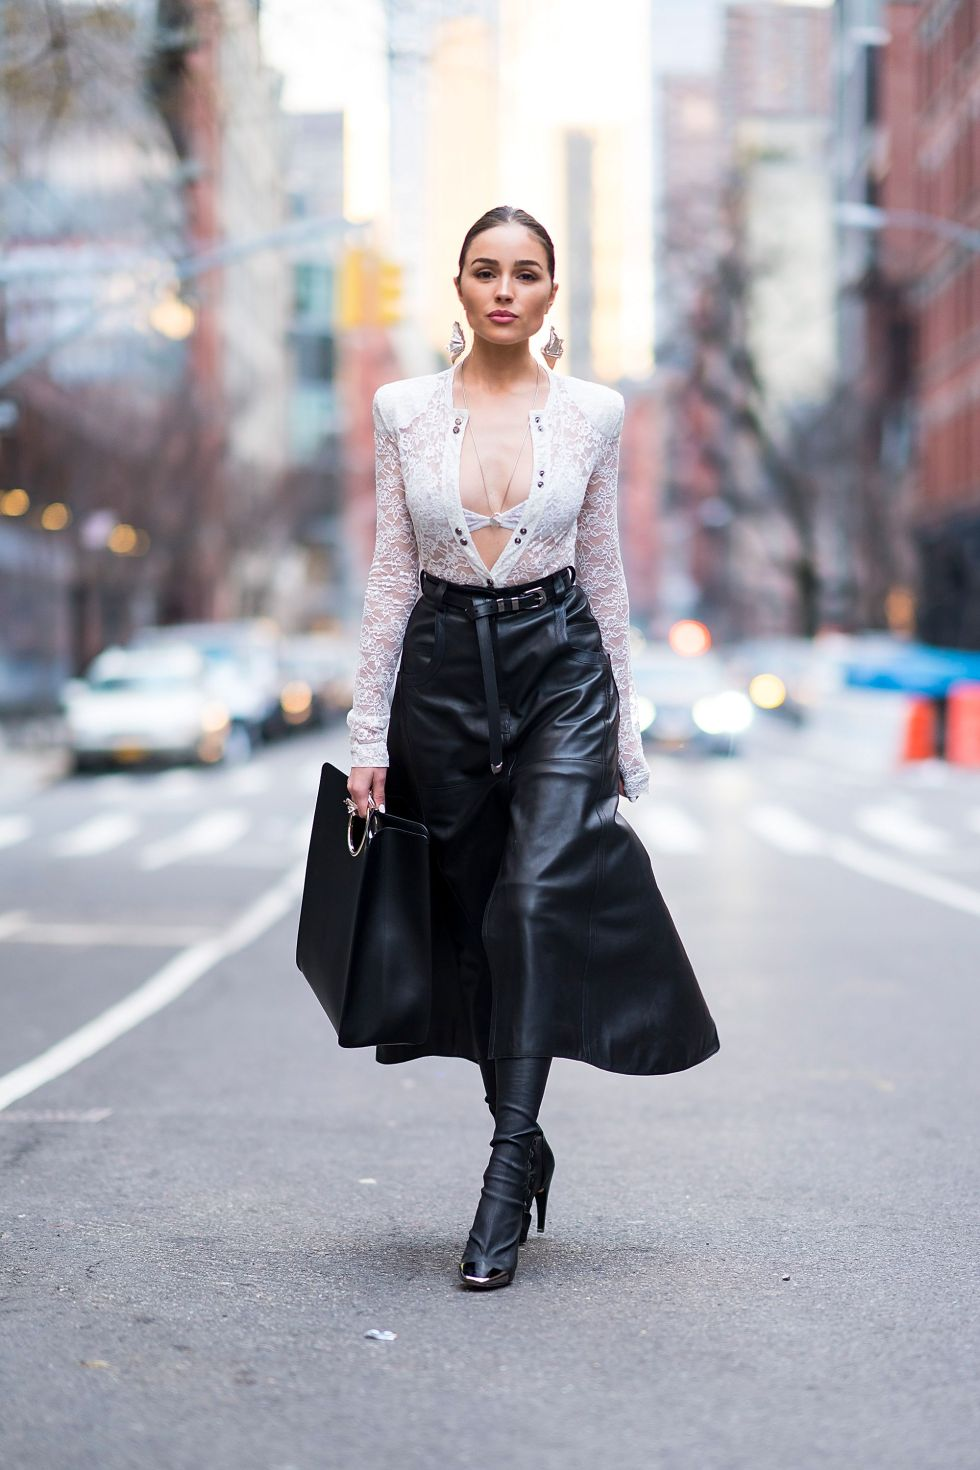 9 Wear It With a Plunging Neckline